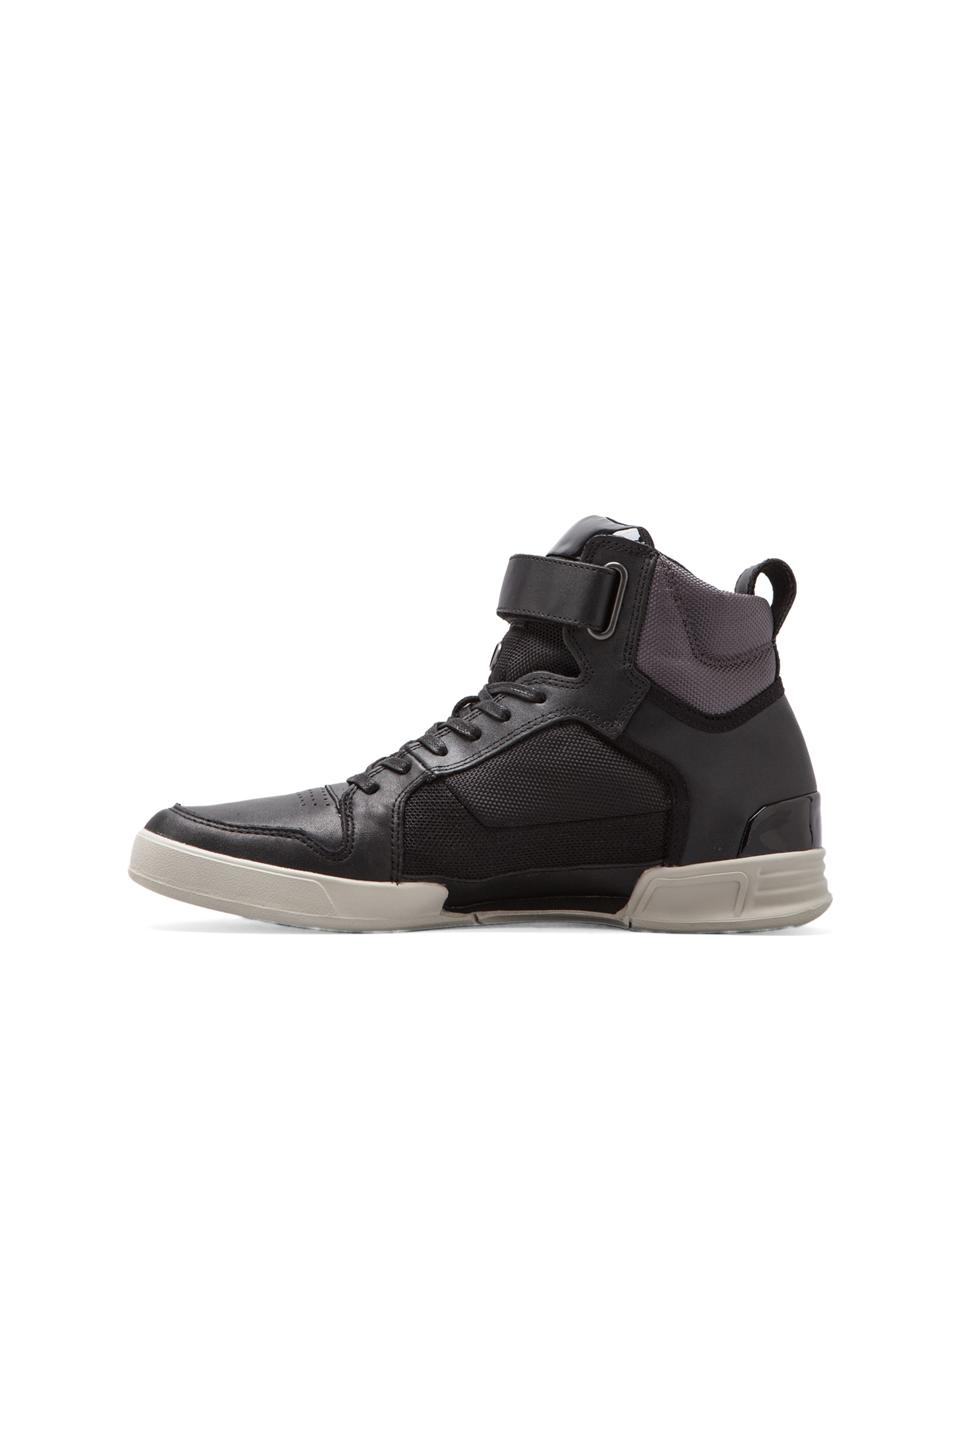 G-Star Yard Bullion in Black Leather & Textile